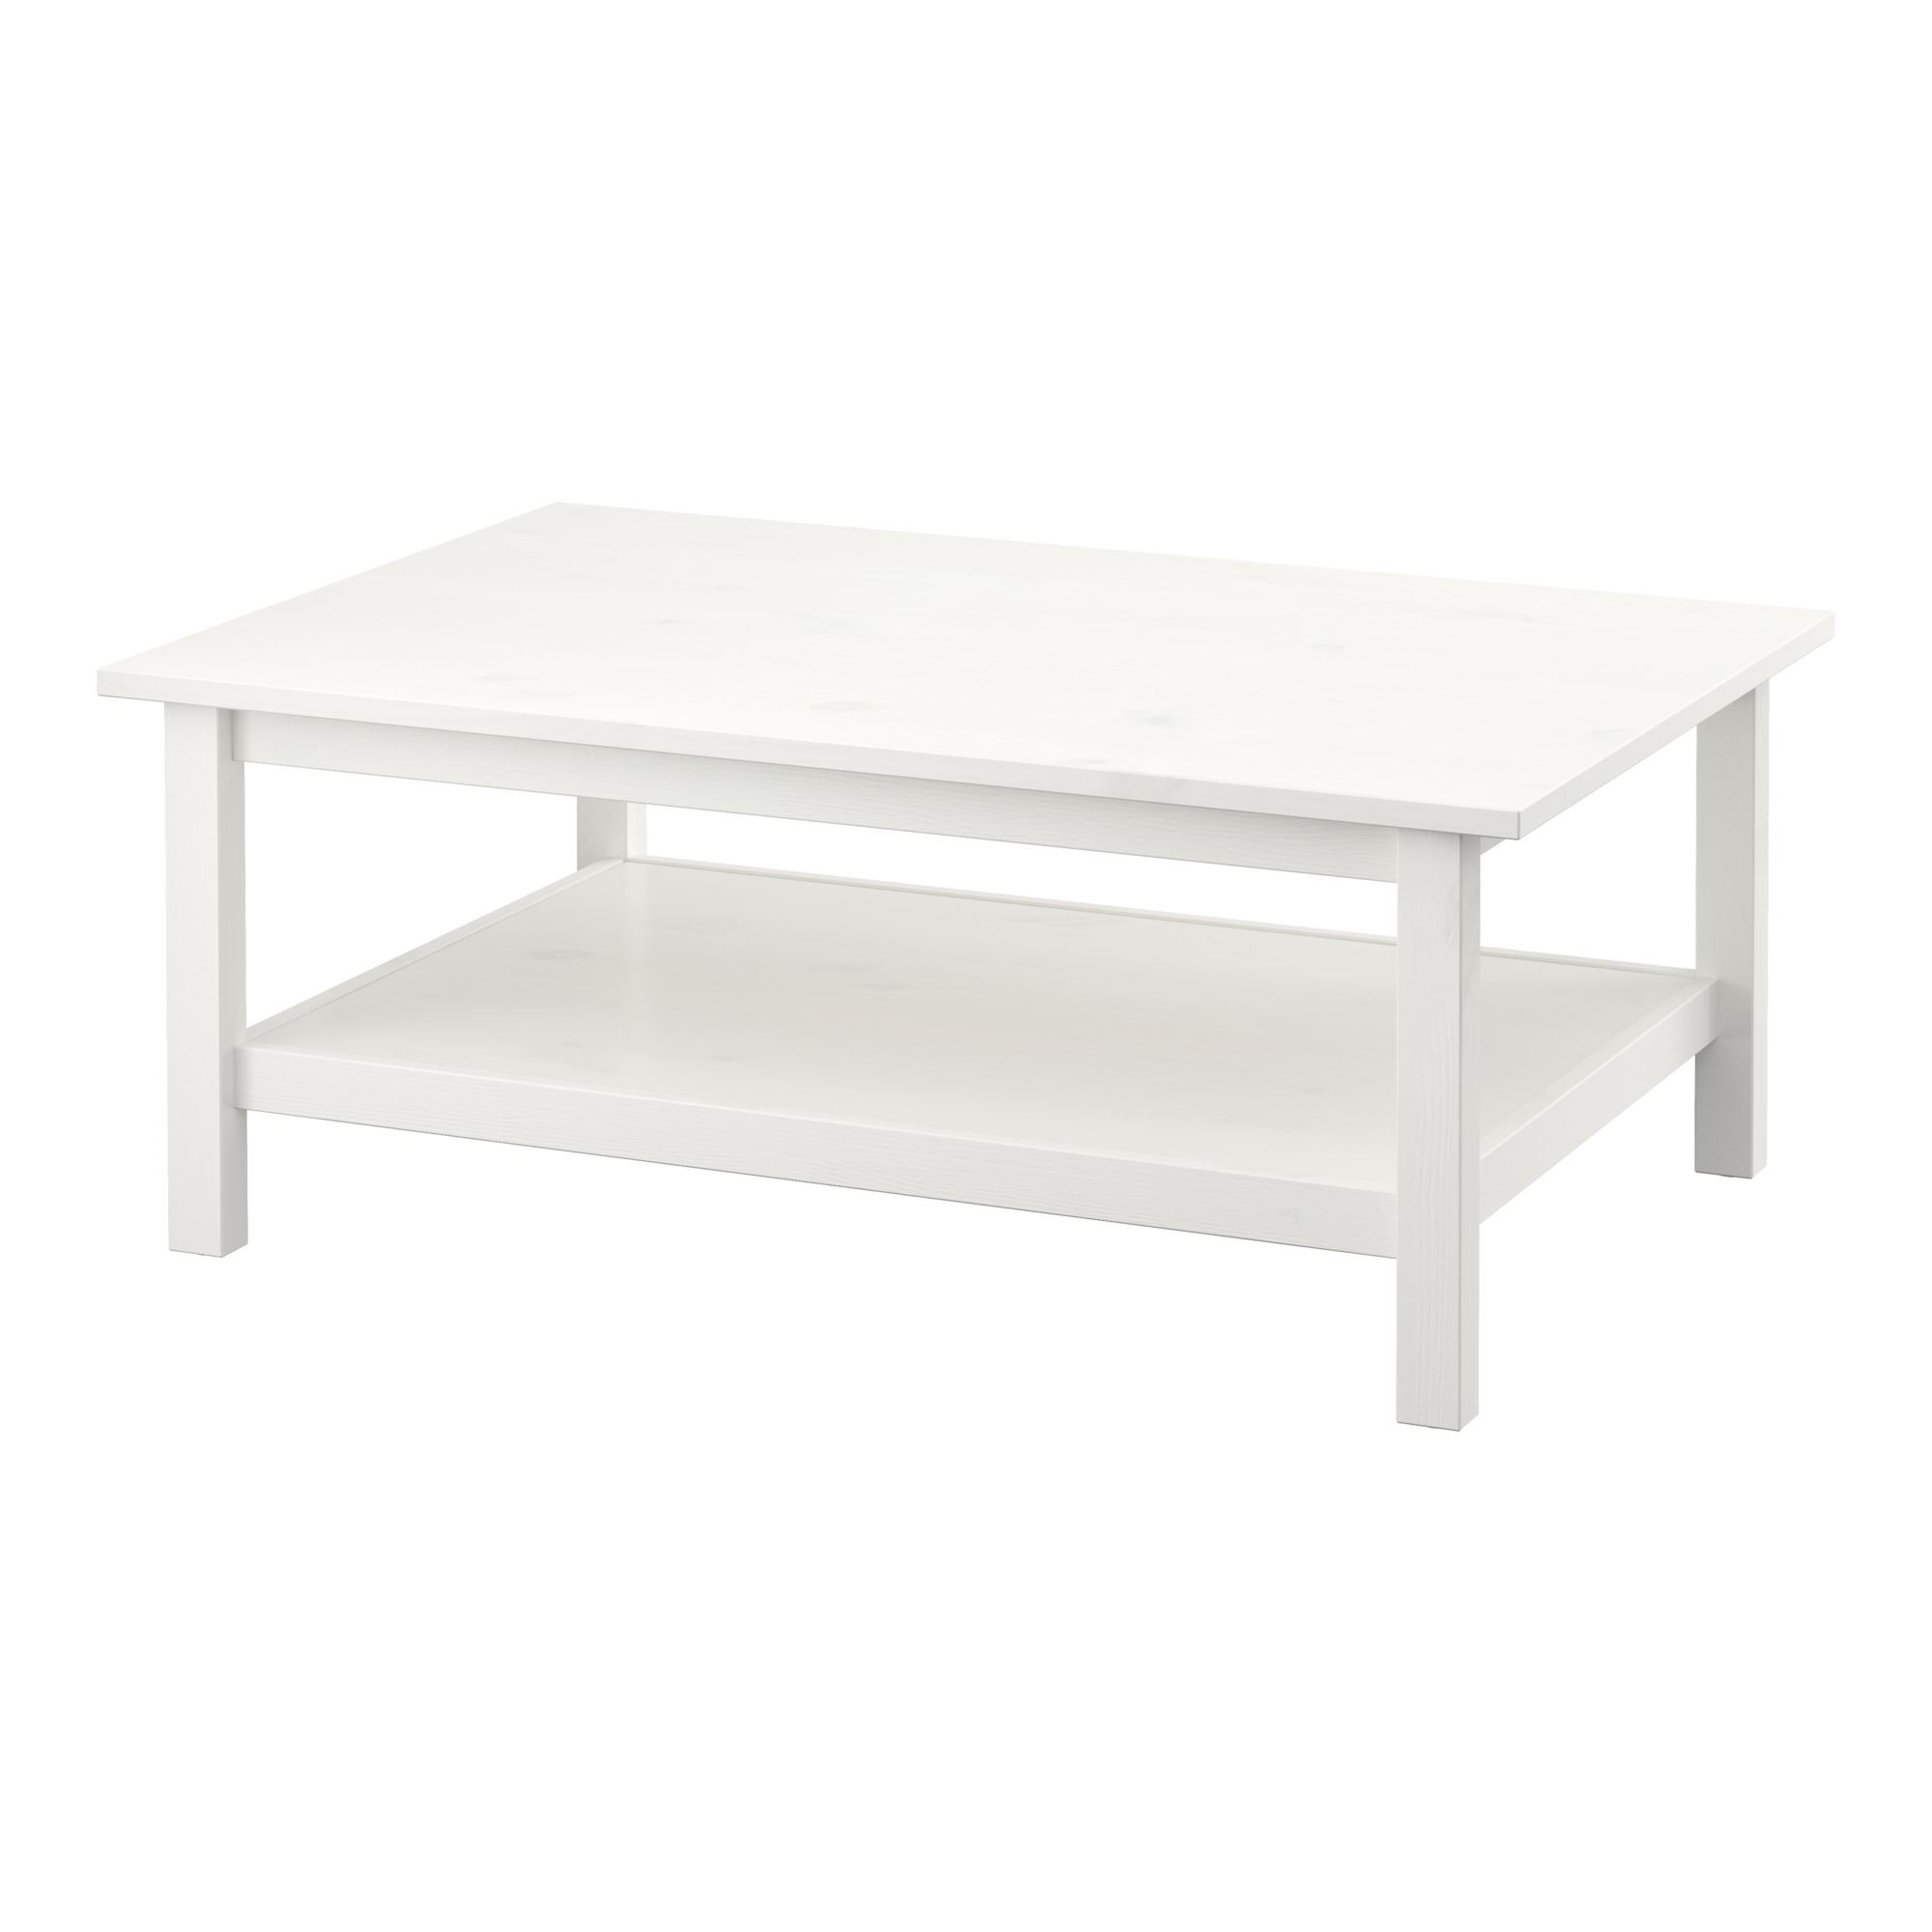 HEMNES coffee table white 118x46 cm